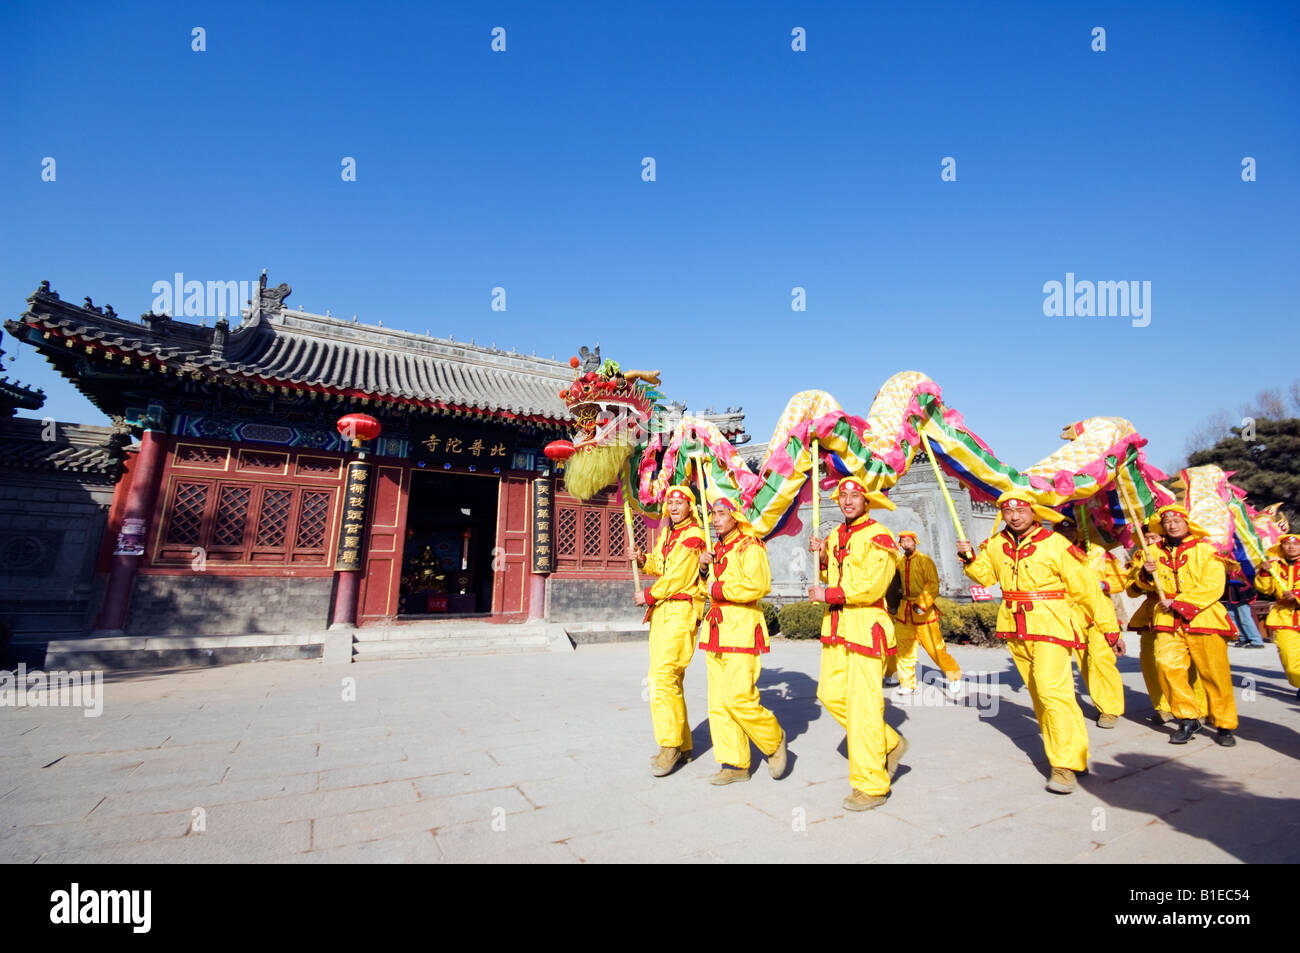 China Beijing Beiputuo temple and film studio Chinese New Year Spring Festival Dragon Dance performers - Stock Image